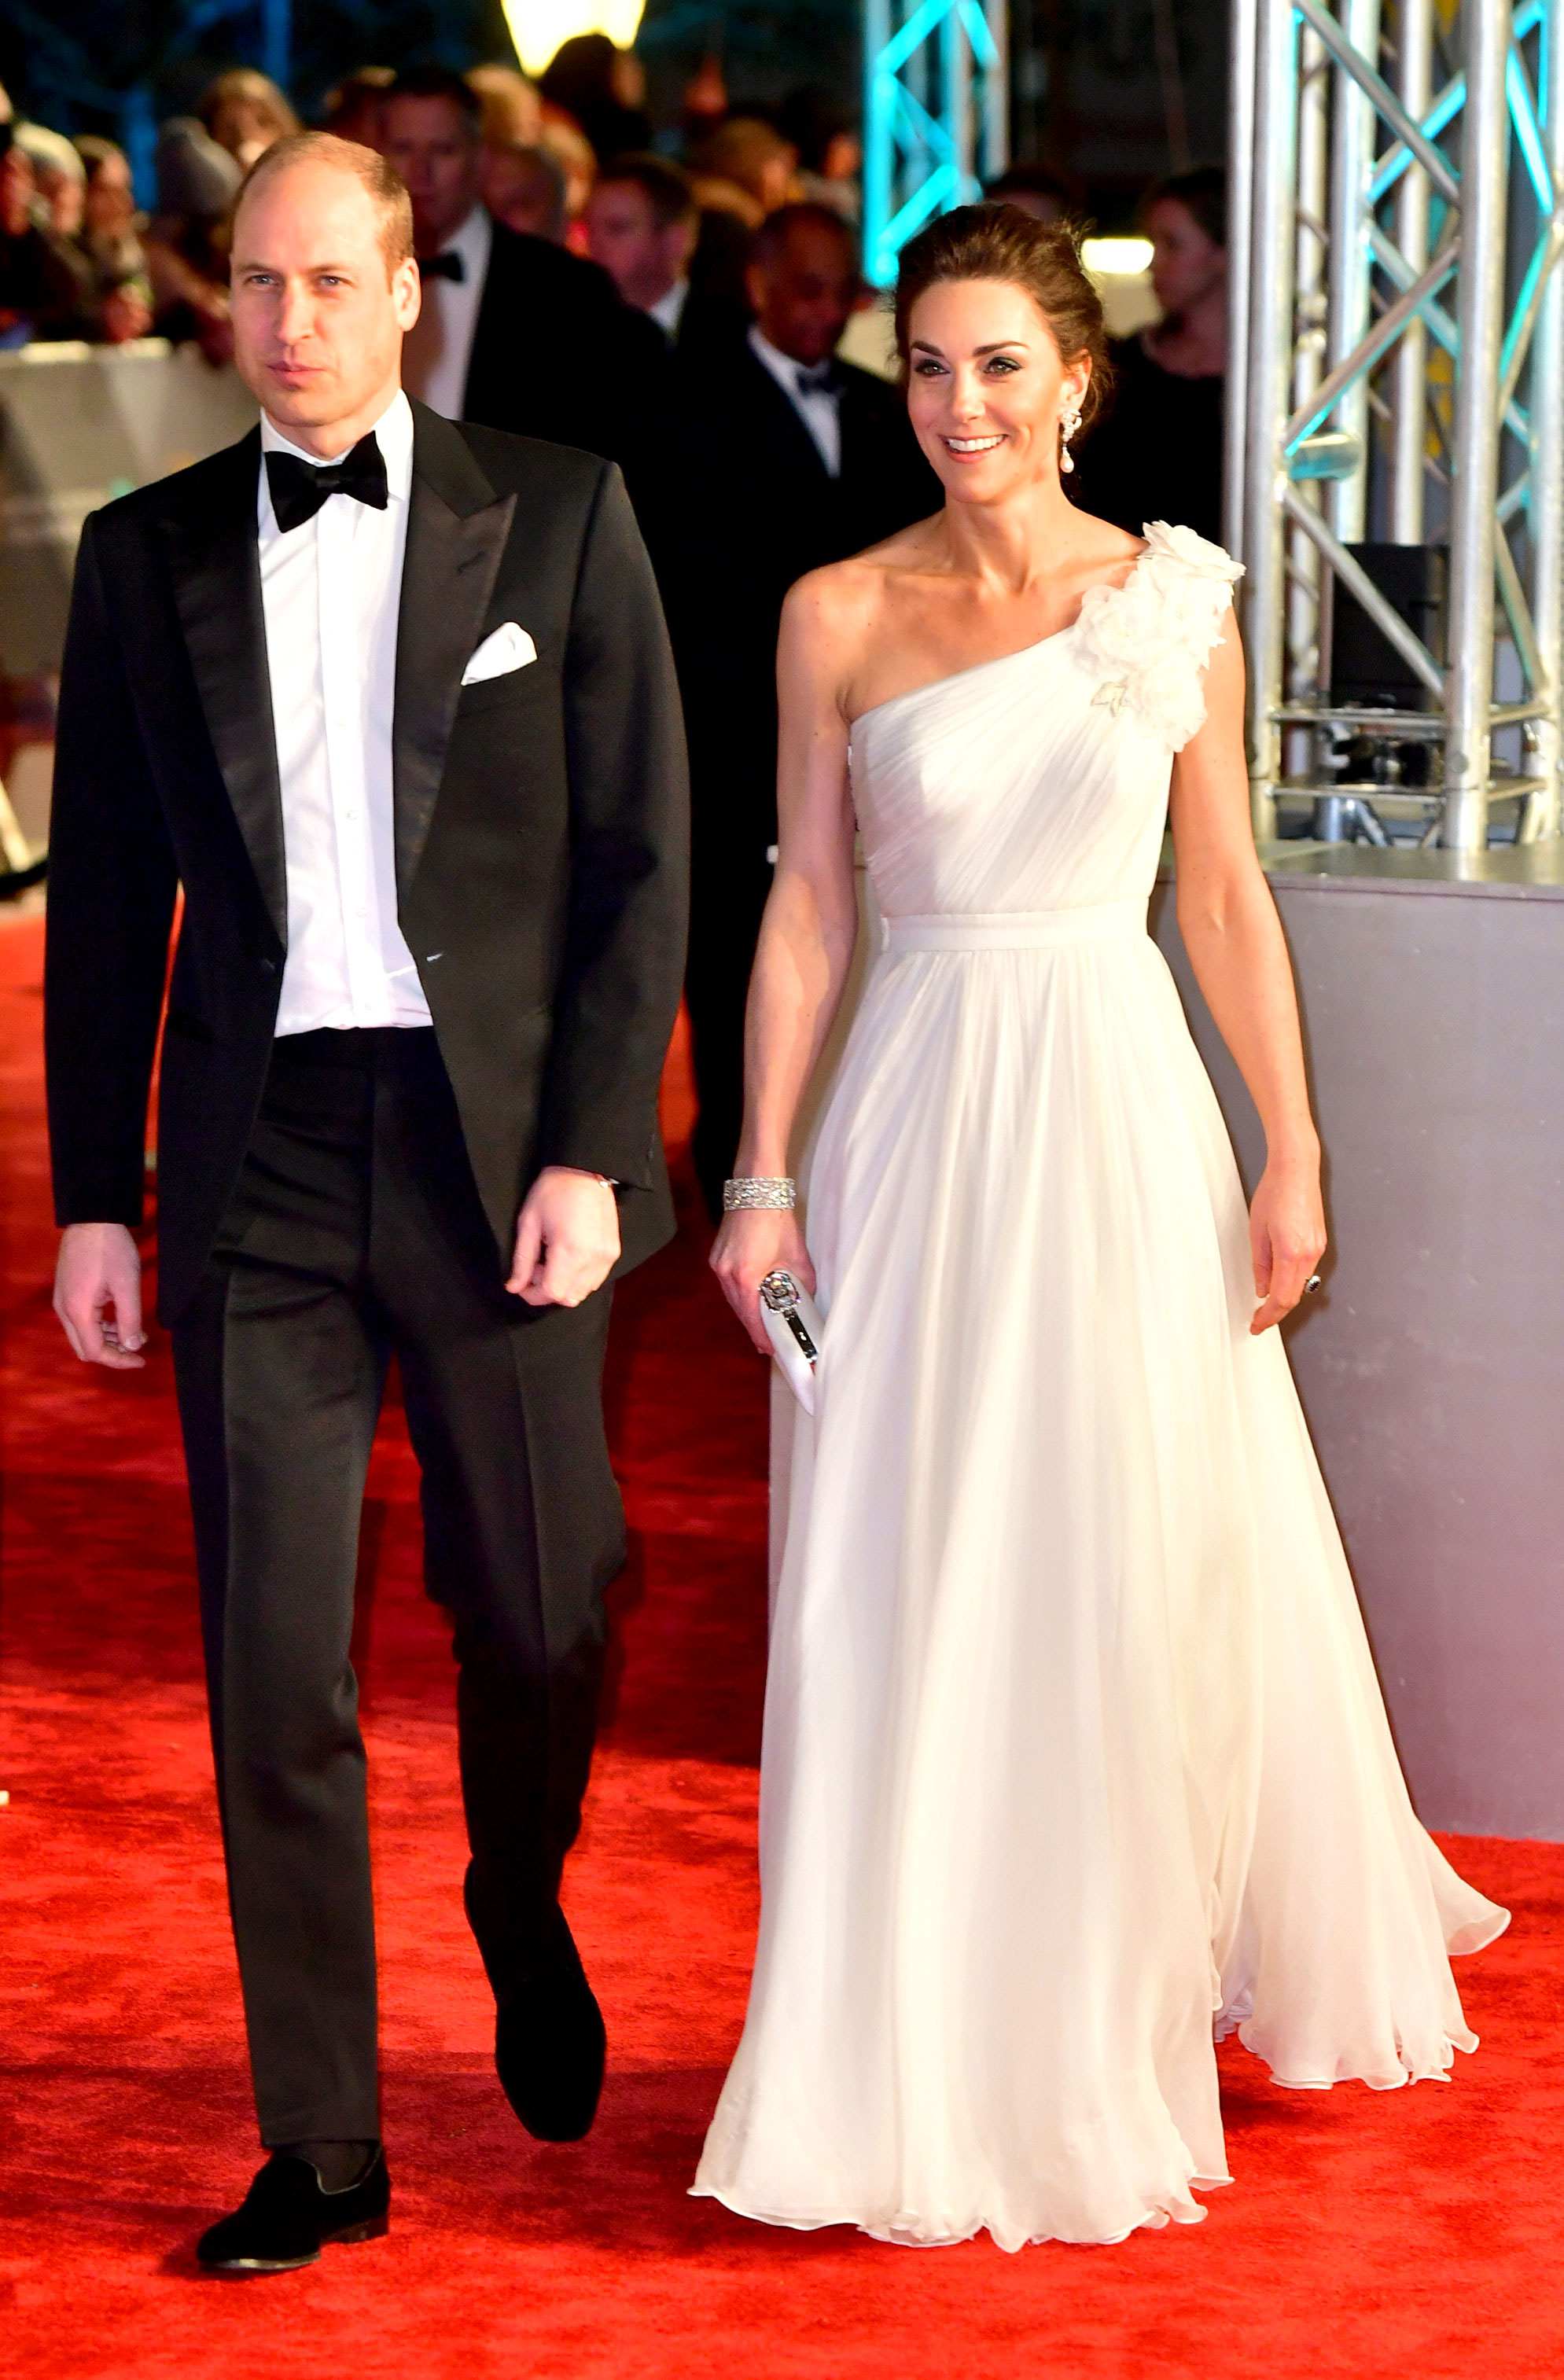 Kate Middleton Stuns at the BAFTAs - Prince William, Duke of Cambridge and Catherine, Duchess of Cambridge arrive at the EE British Academy Film Awards at the Royal Albert Hall on February 10, 2019 in London, England.